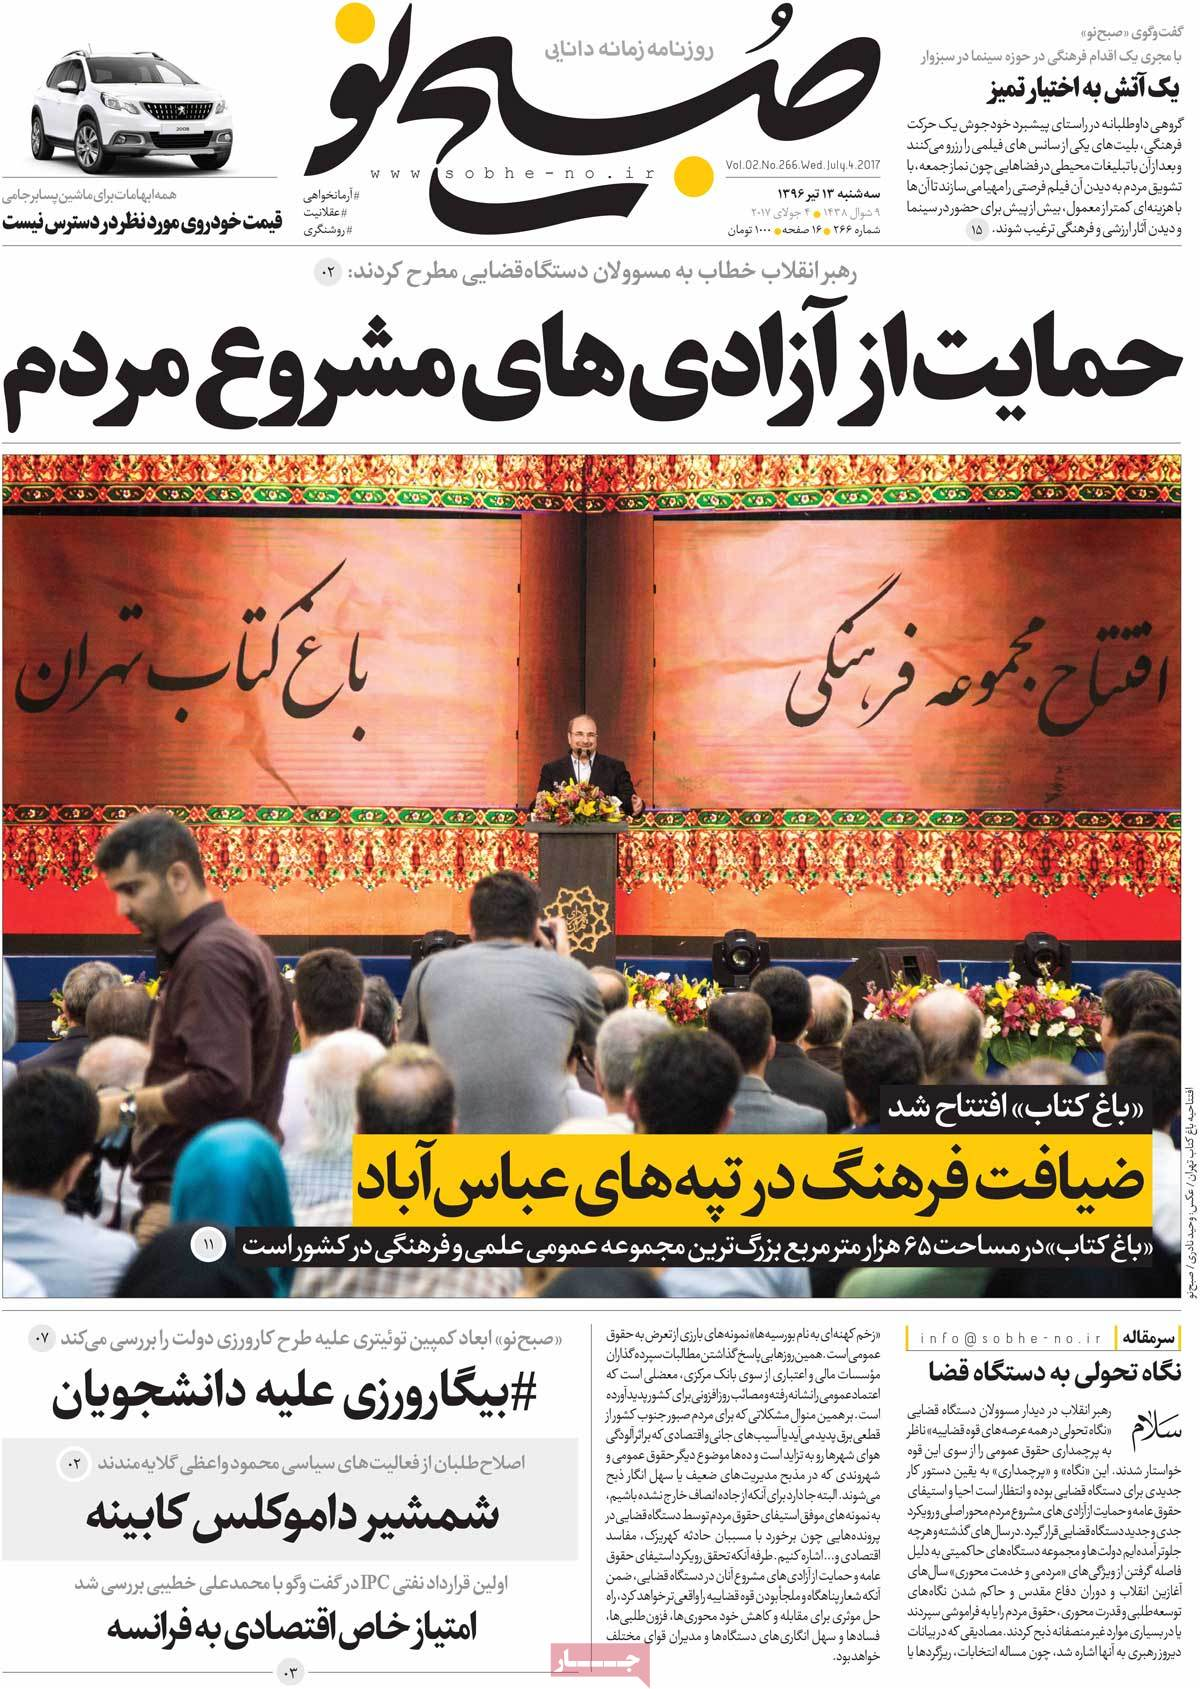 A Look at Iranian Newspaper Front Pages on July 4 - sobheno